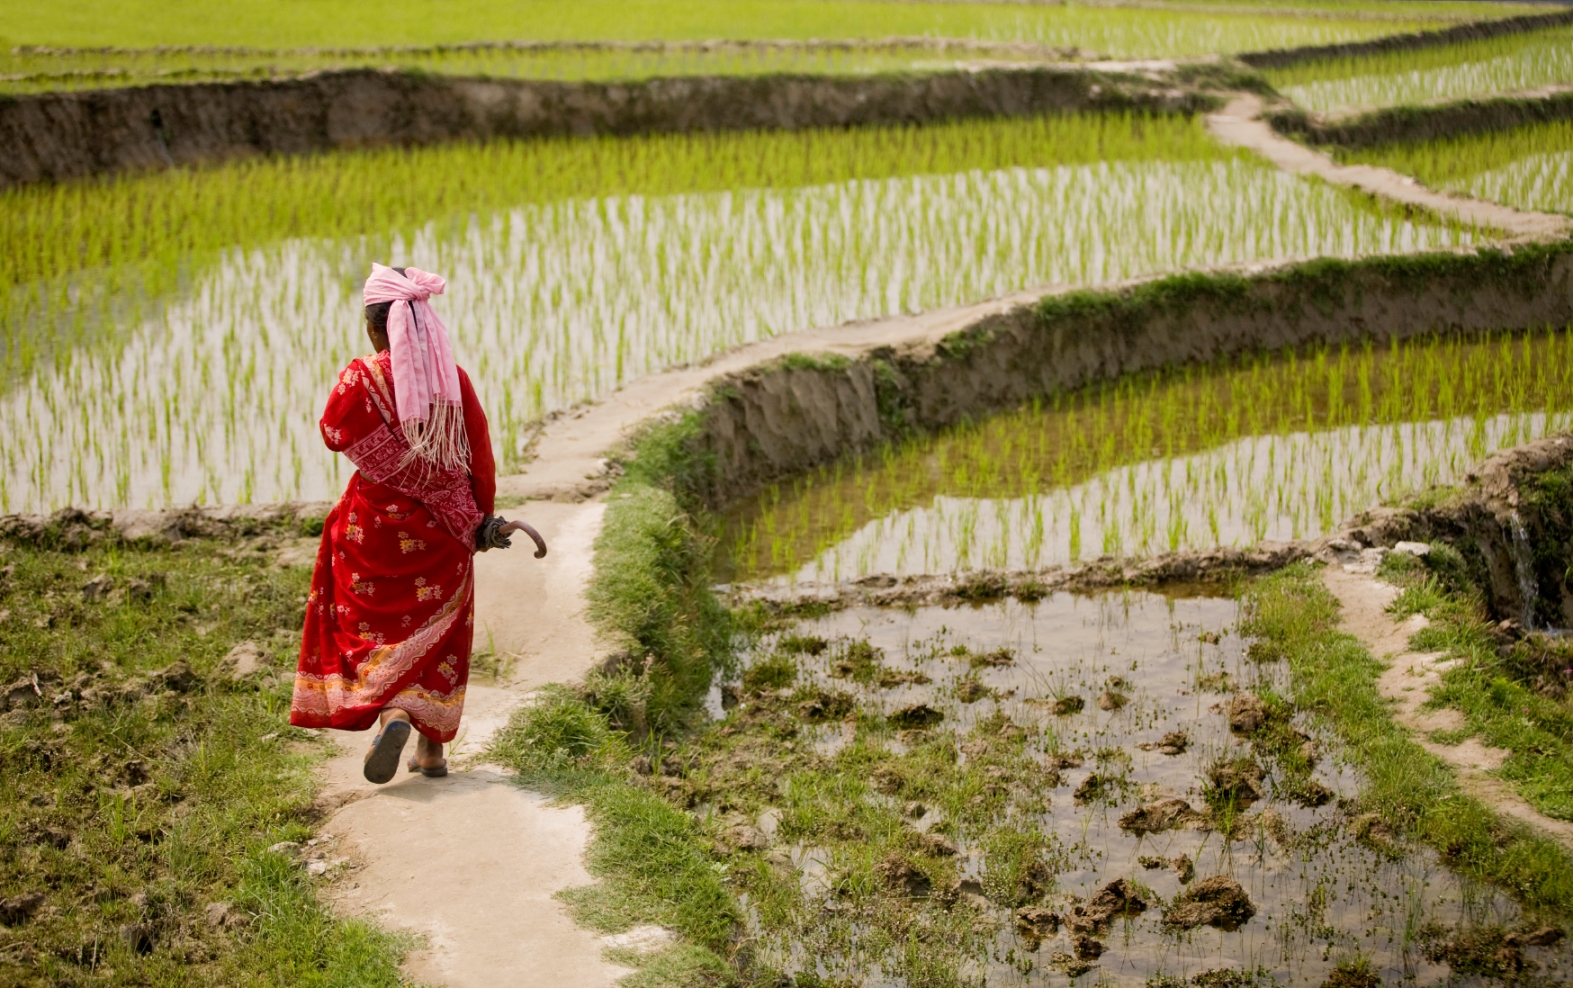 Asia - Nepal - Rice paddy fields - Istock med.jpg